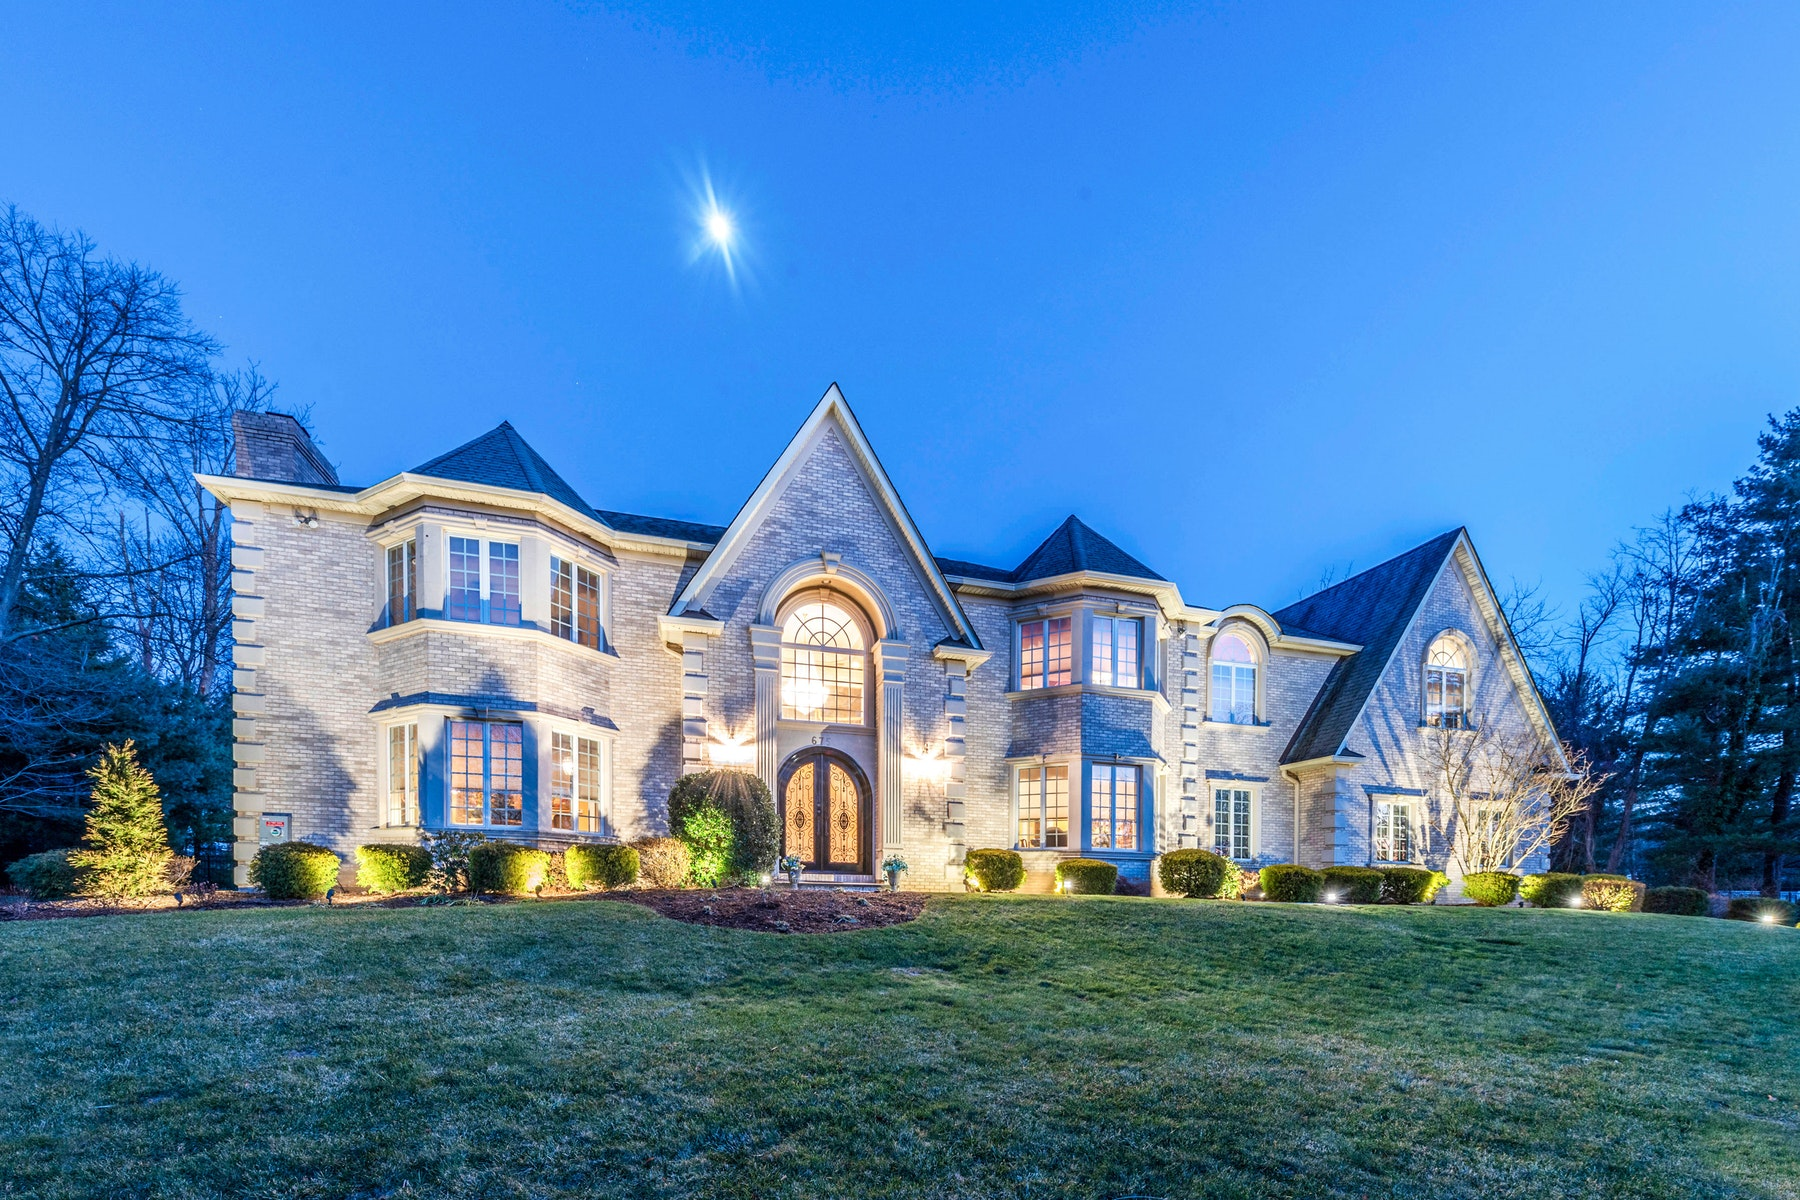 Single Family Homes for Sale at Colonial Manor 675 Orchard Lane Franklin Lakes, New Jersey 07417 United States